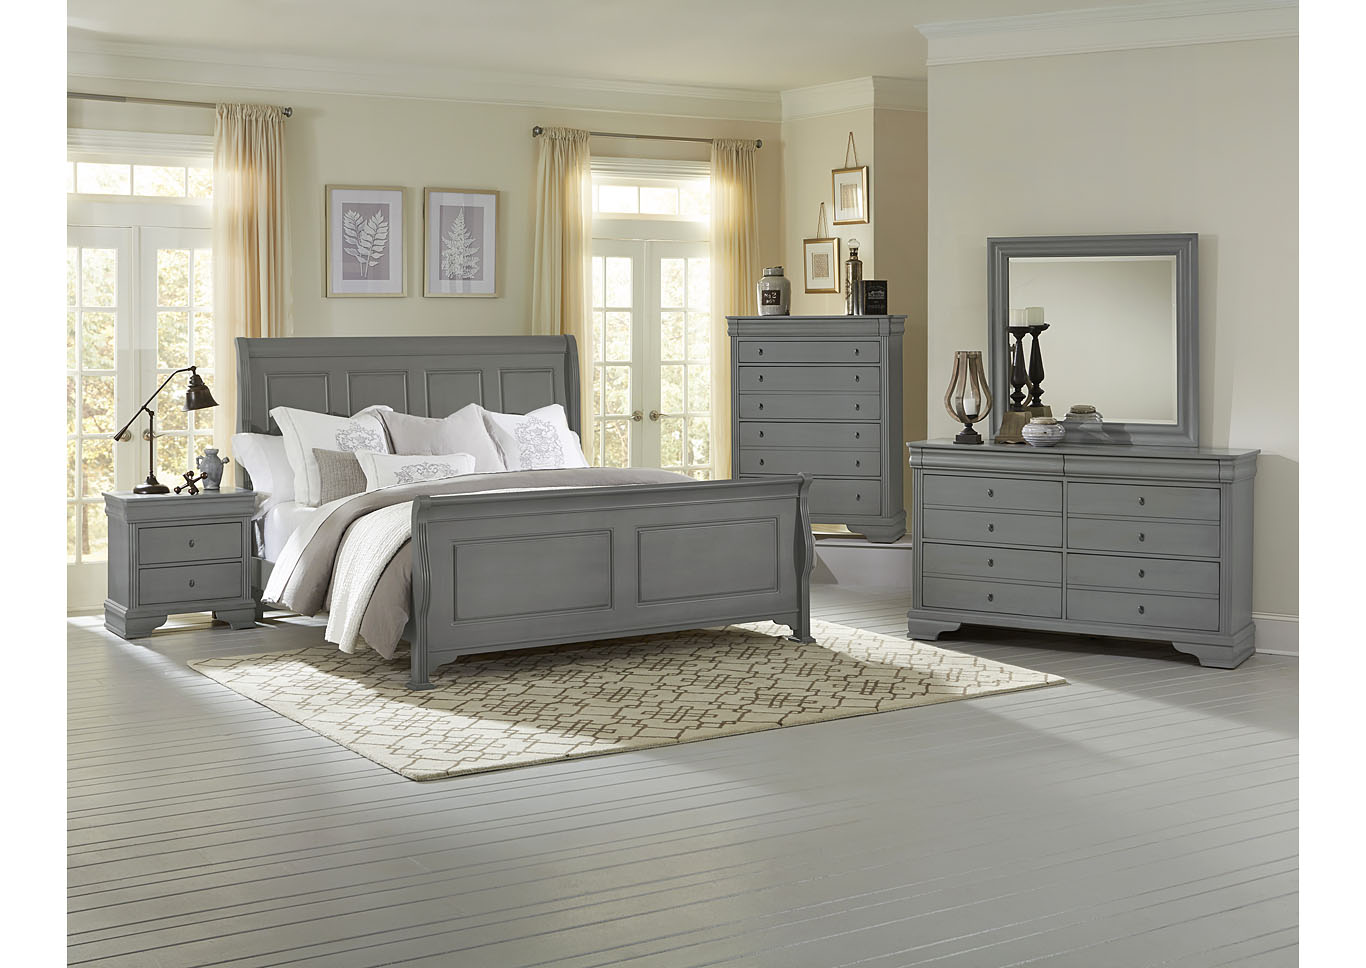 French Market Zinc King Poster Bed,Vaughan-Bassett